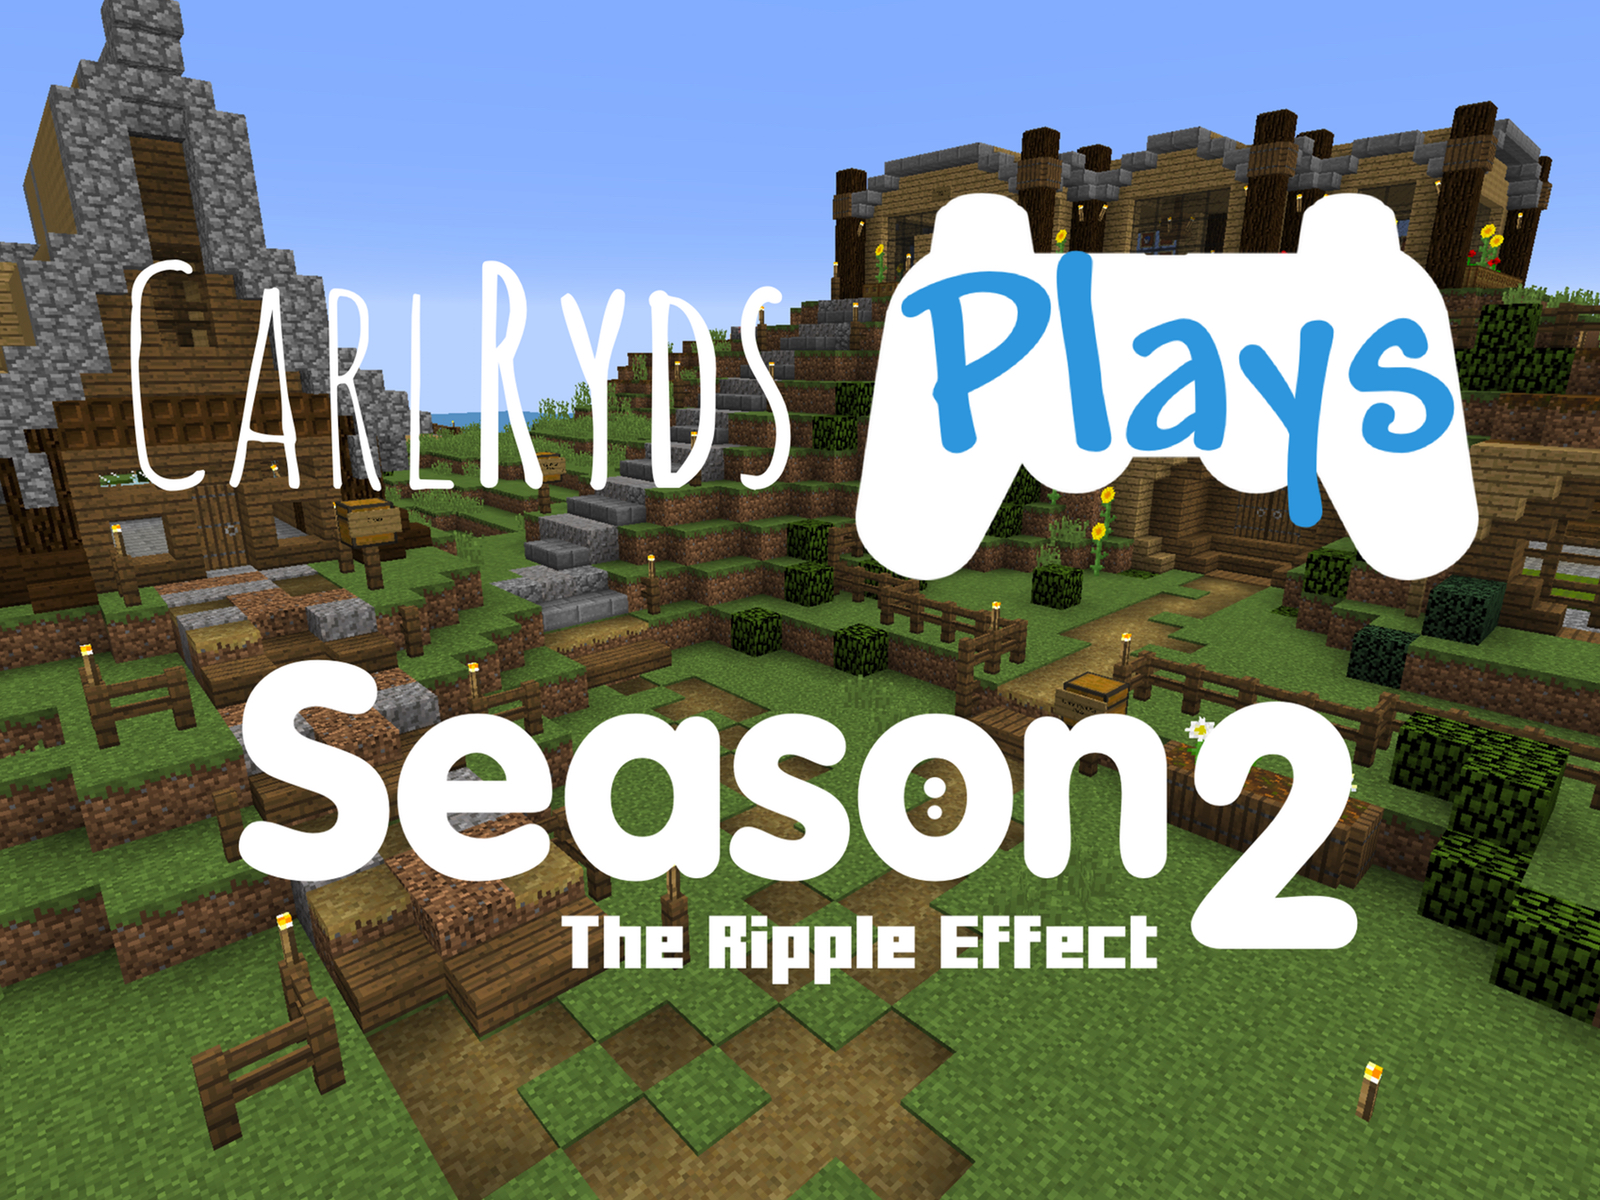 CarlRyds plays Minecraft on The Ripple Effect SMP